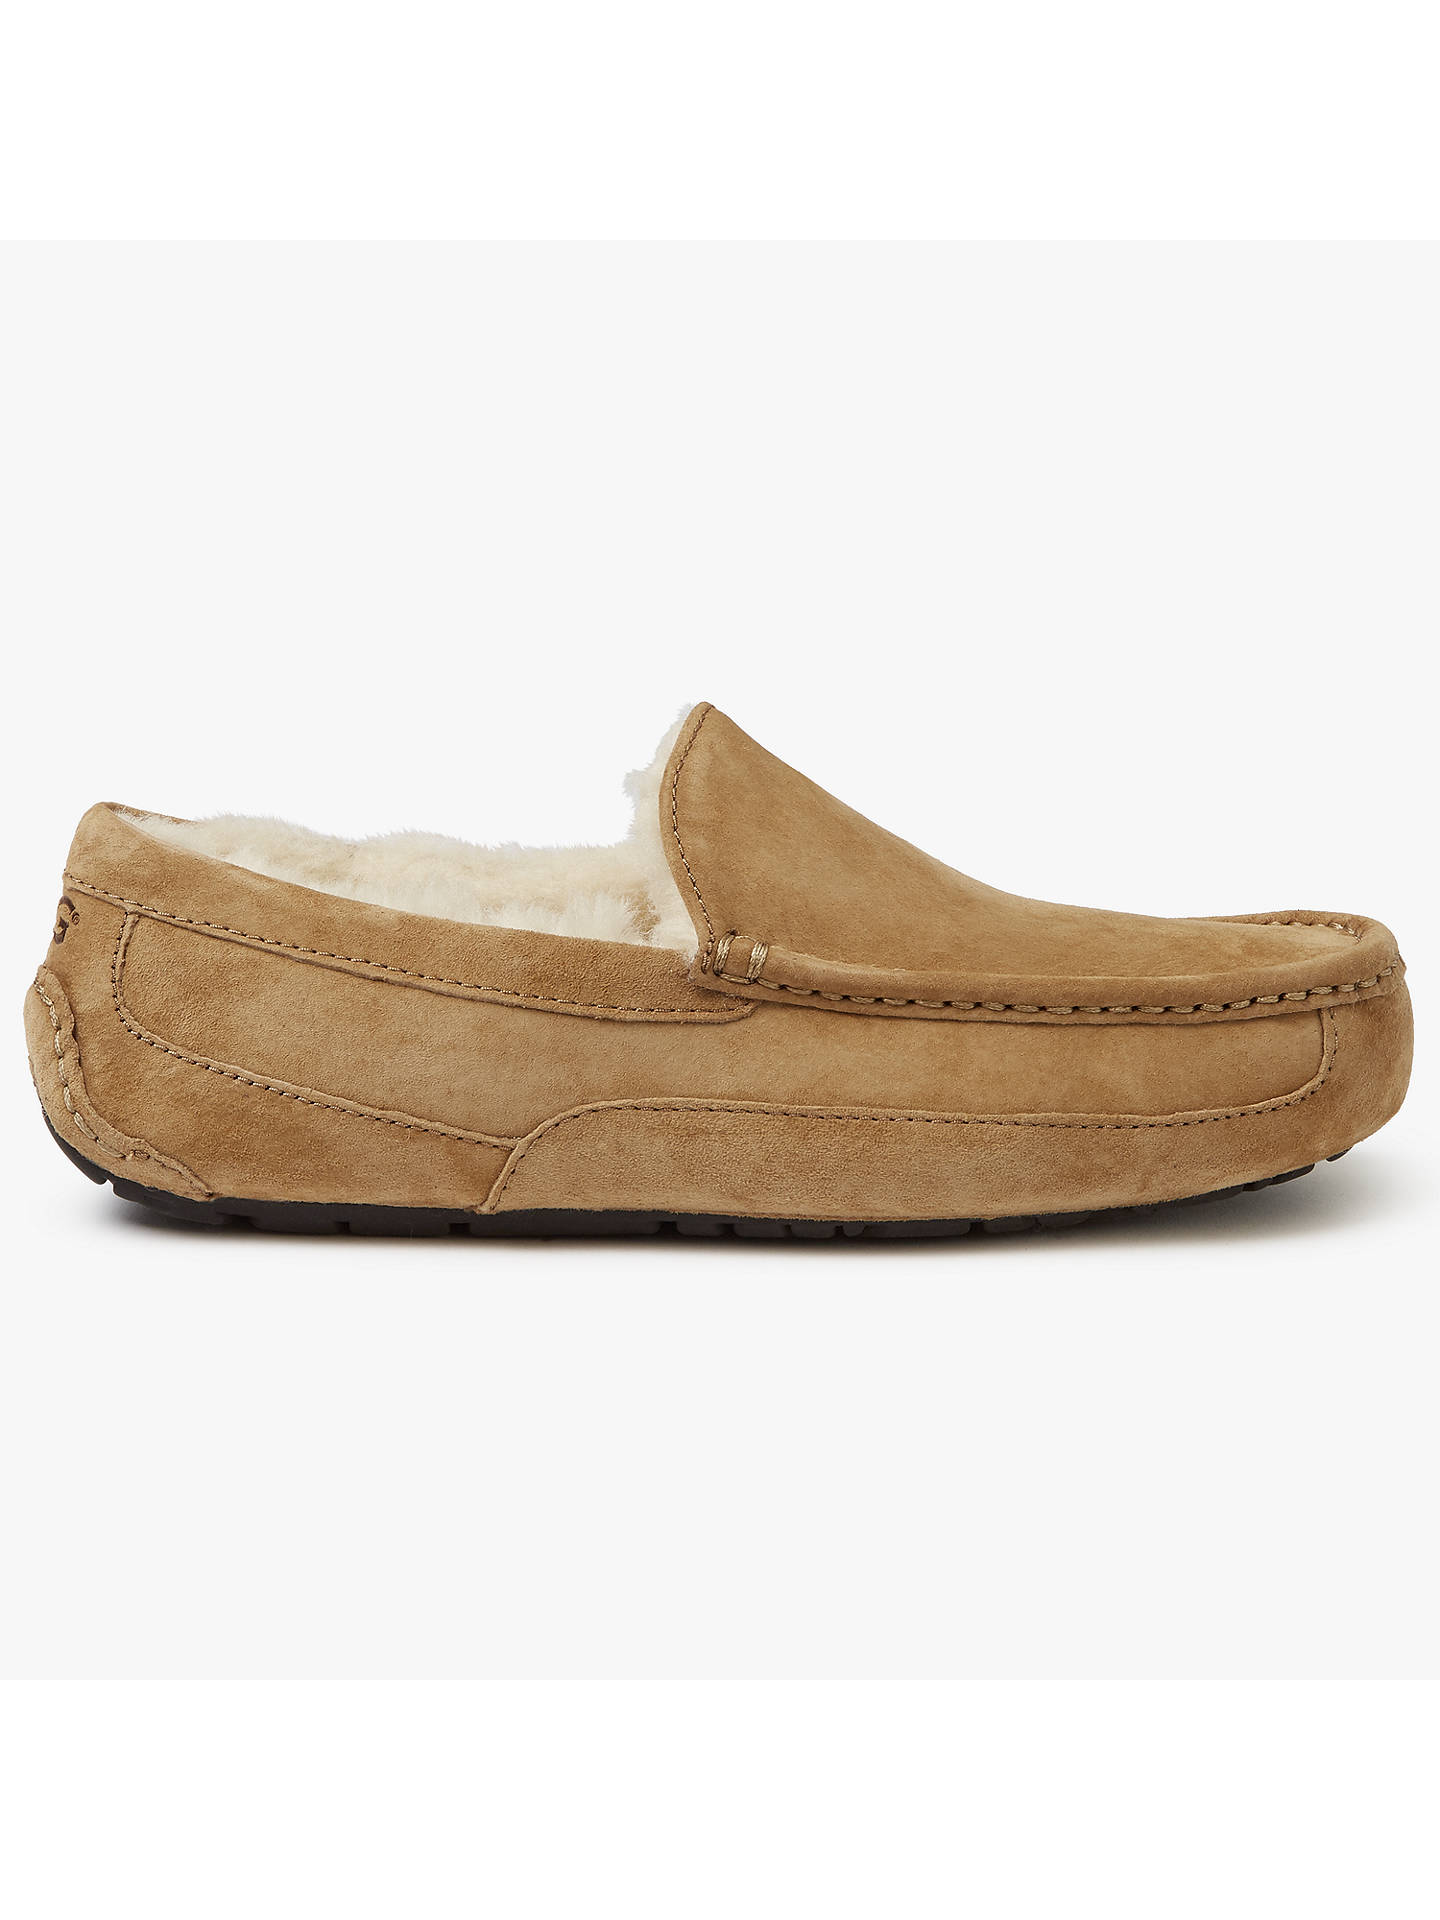 f8ca4678a63 UGG Ascot Moccasin Suede Slippers, Chestnut at John Lewis & Partners